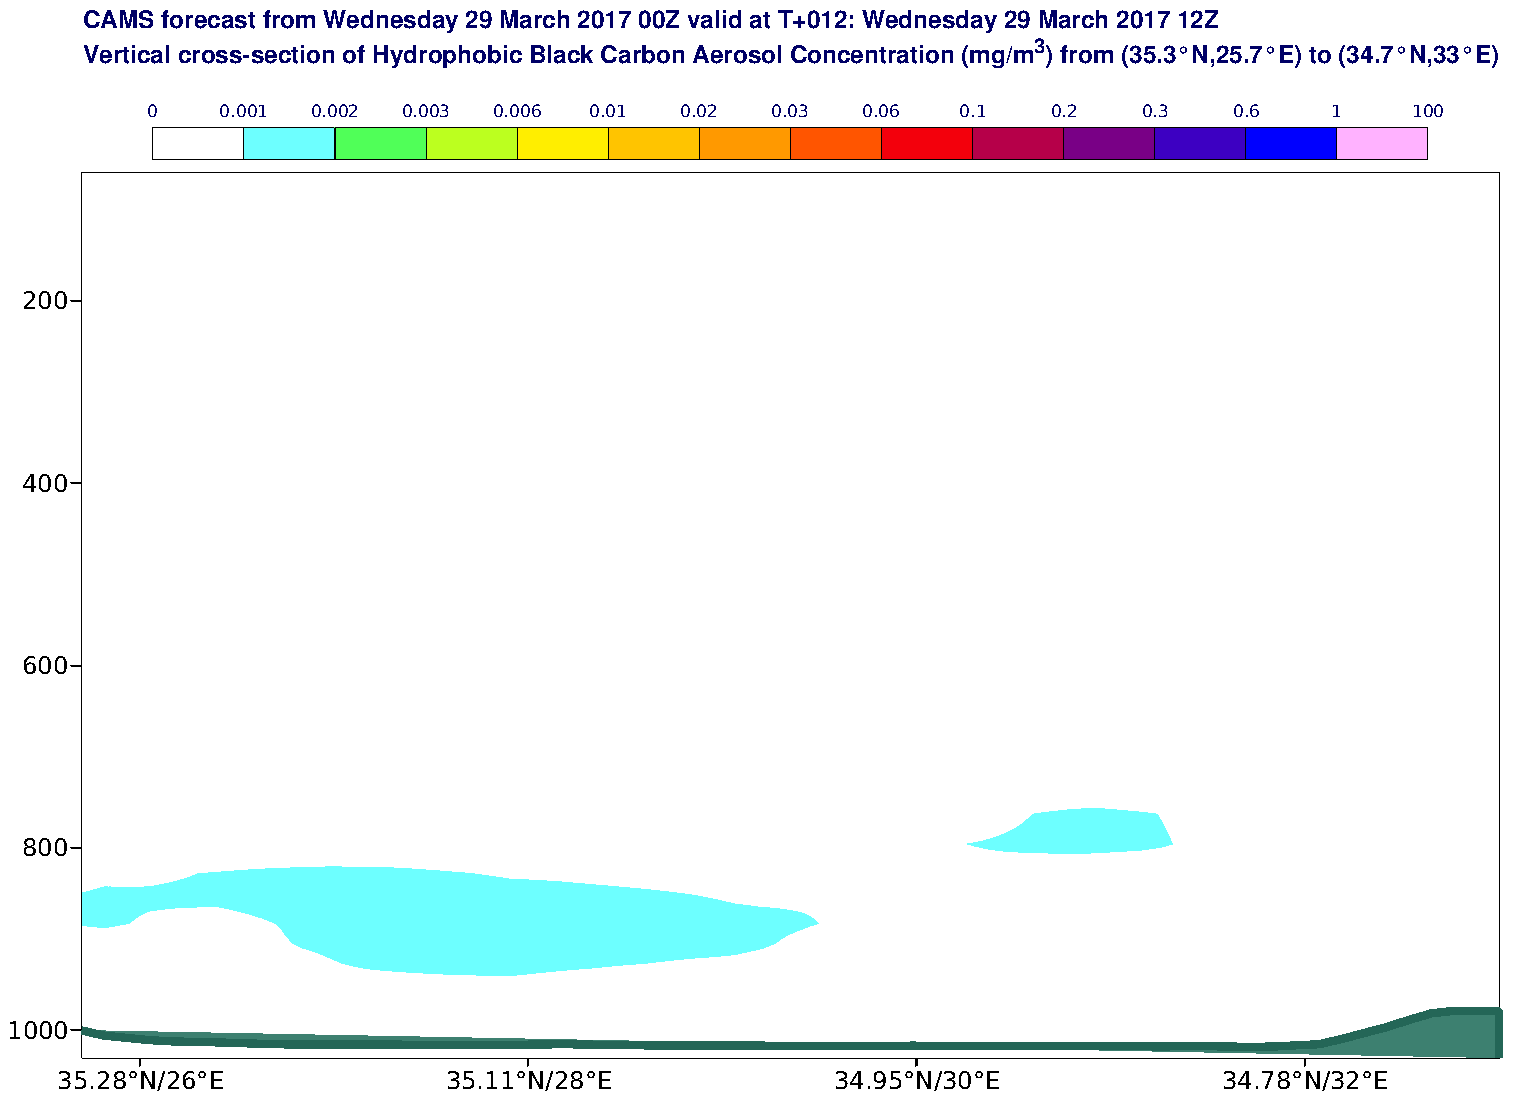 Vertical cross-section of Hydrophobic Black Carbon Aerosol Concentration (mg/m3) valid at T12 - 2017-03-29 12:00